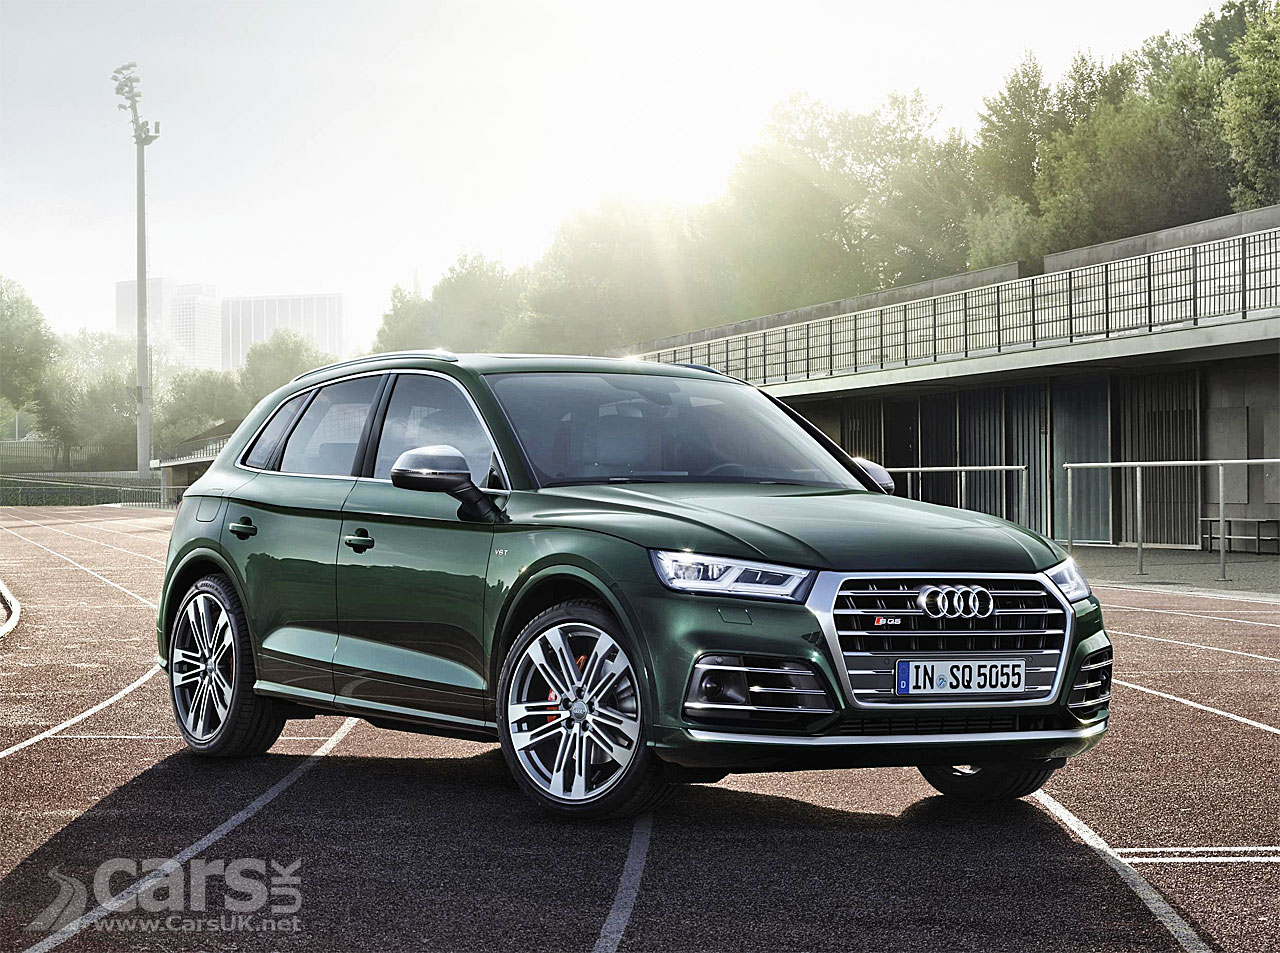 Photo 2017 Audi SQ5 UK